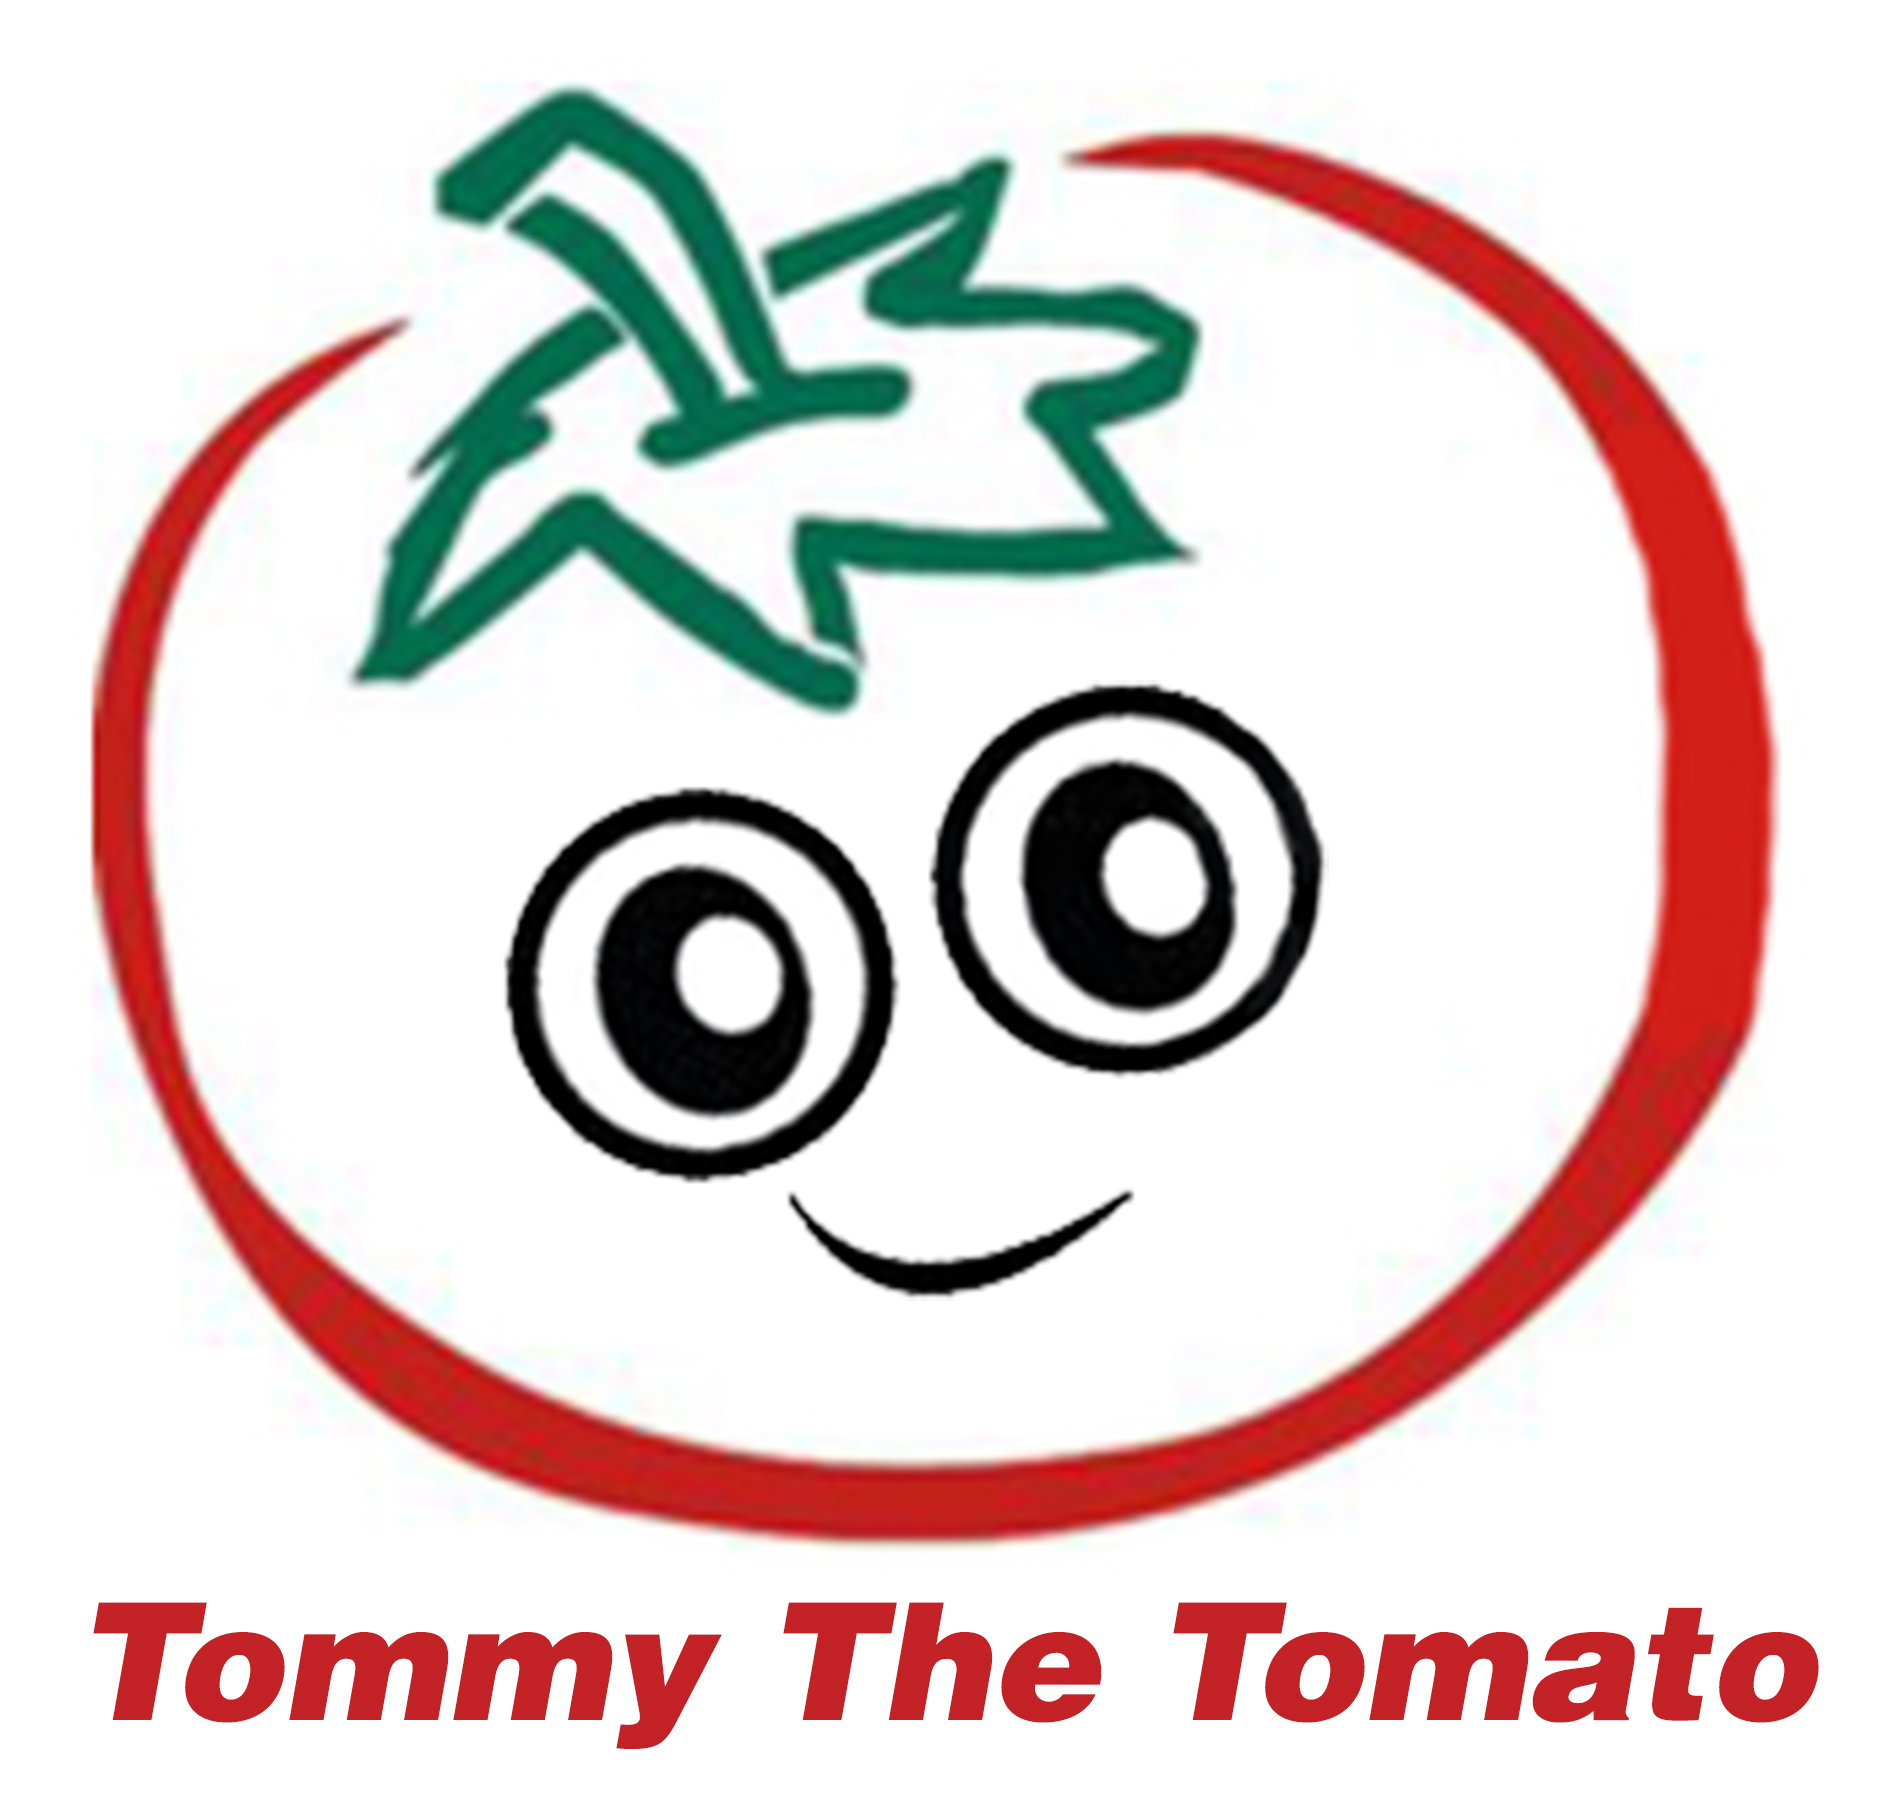 tommy-the-tomato-logo.jpg